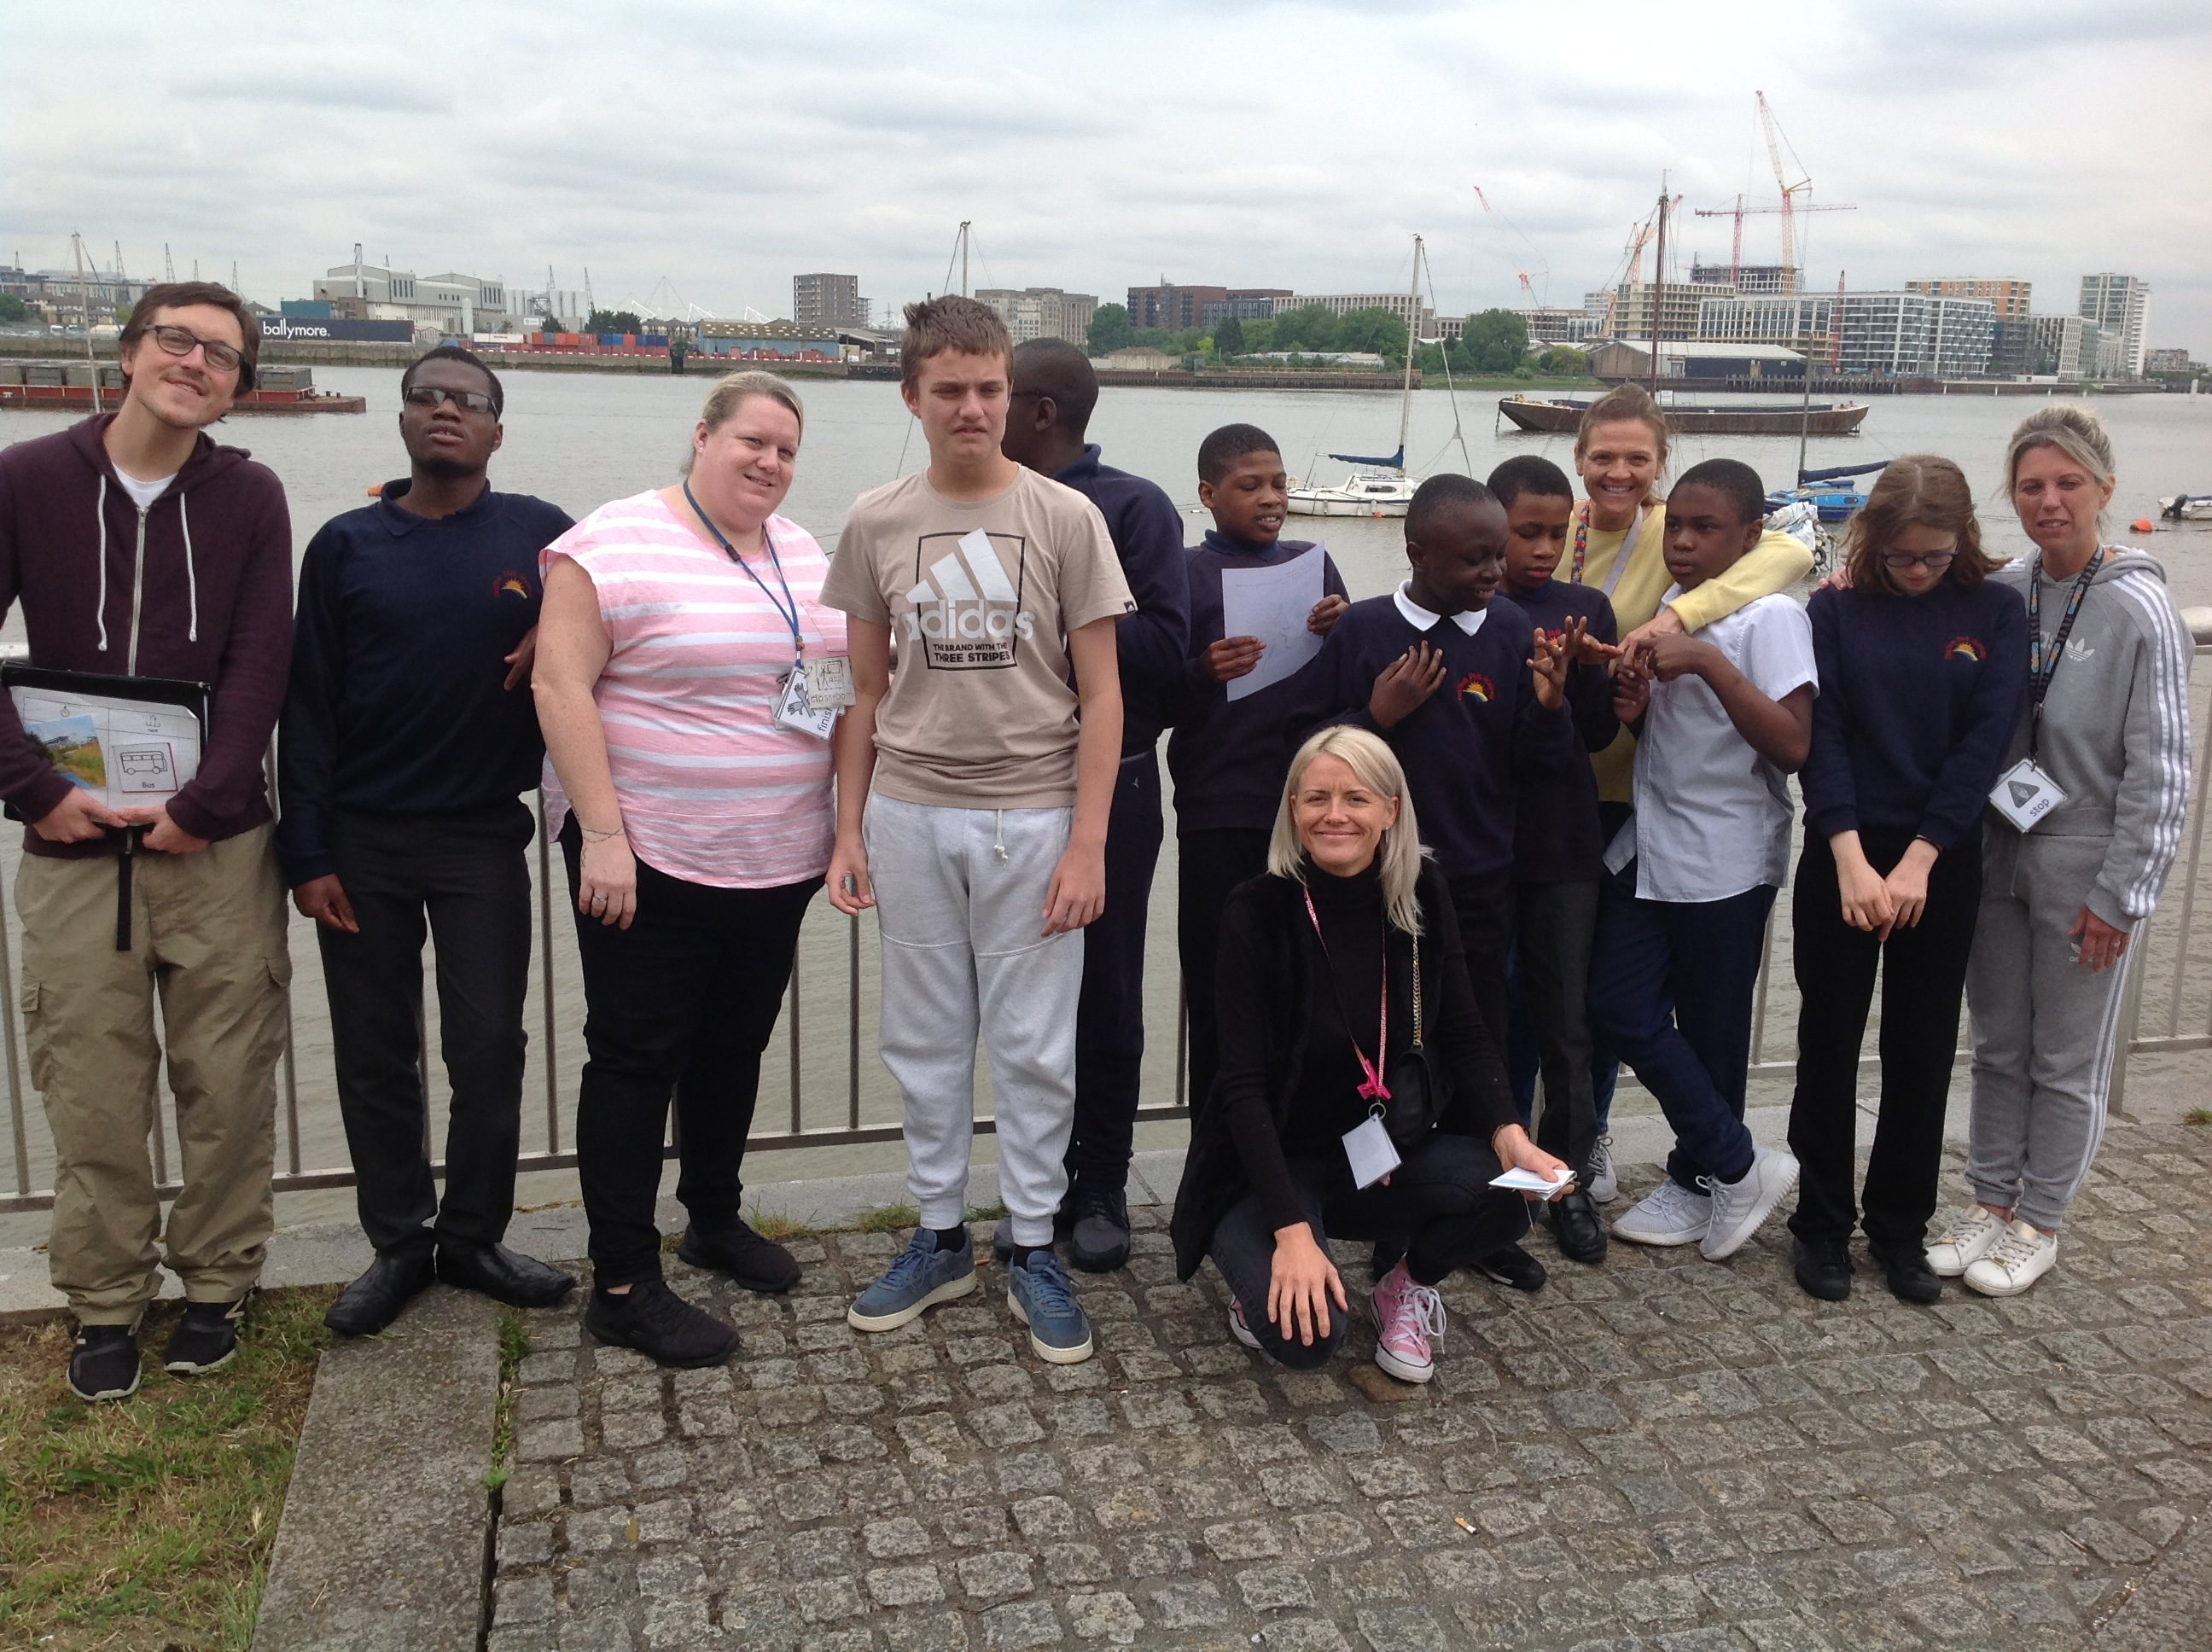 Students at the Ecology Park Woolwich